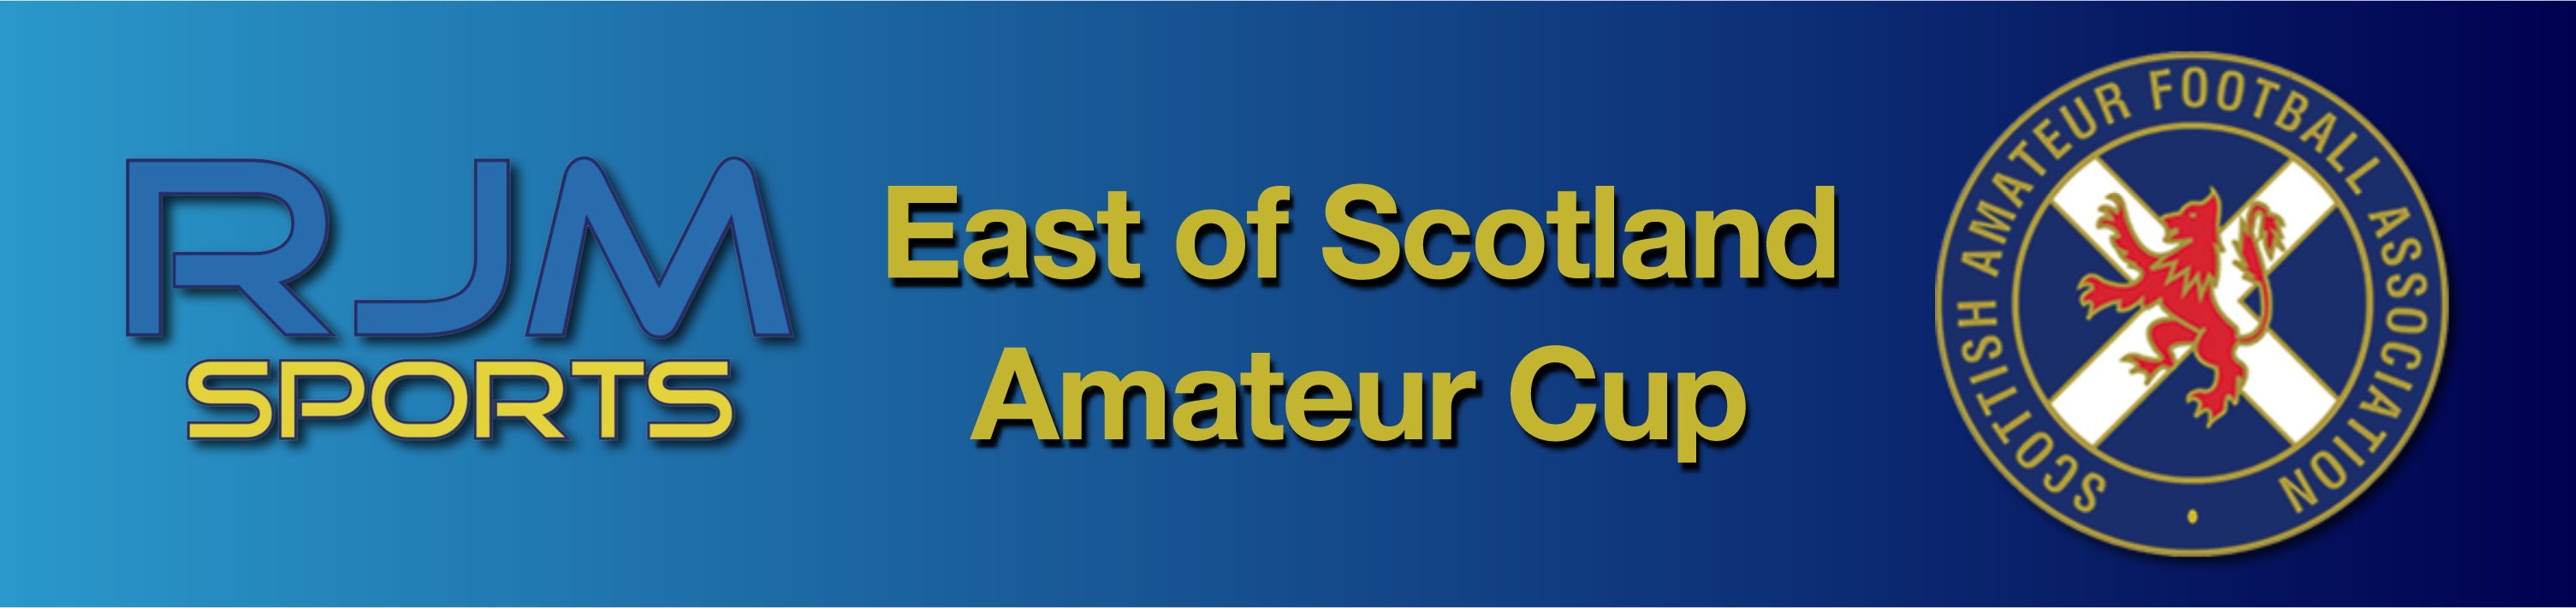 RJM Sports East of Scotland Amateur Cup Final News